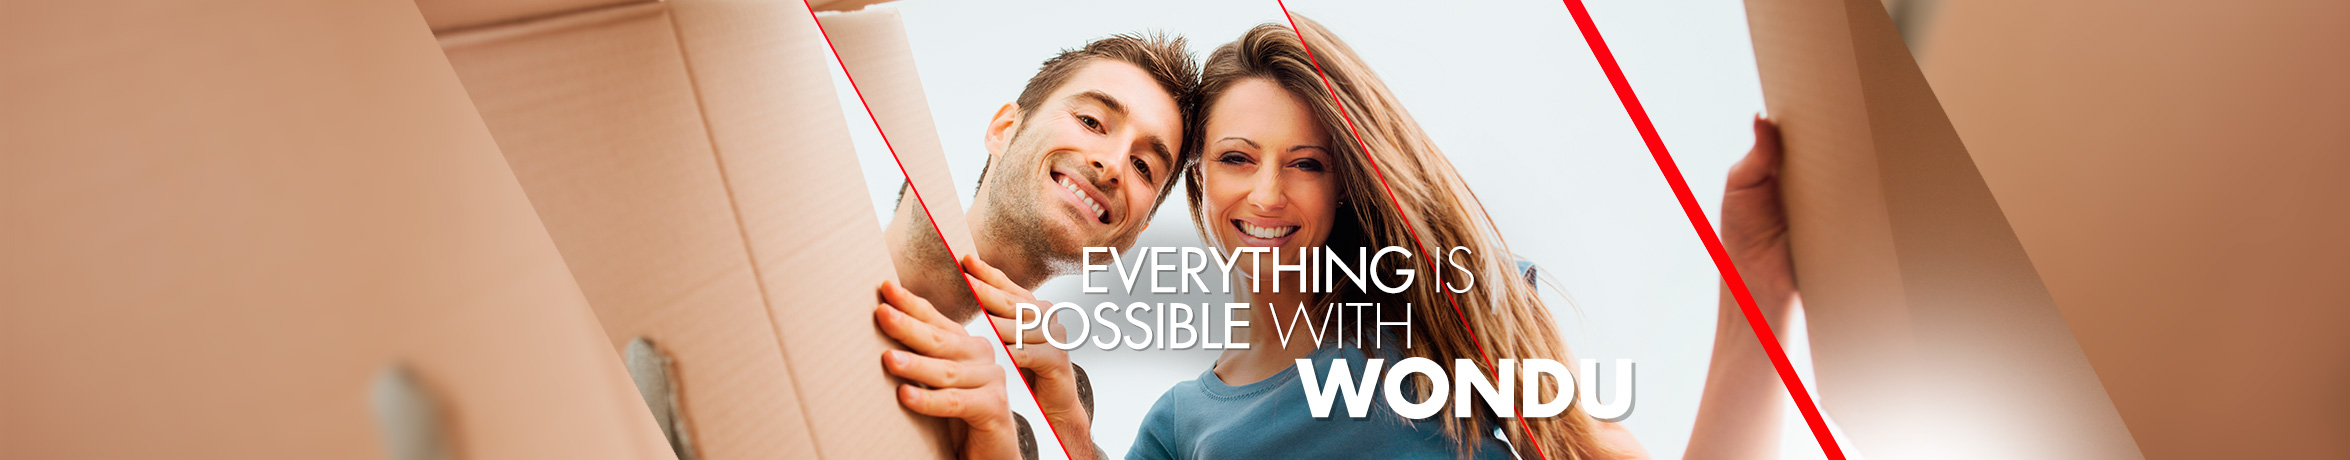 Everything is possible with Wondu